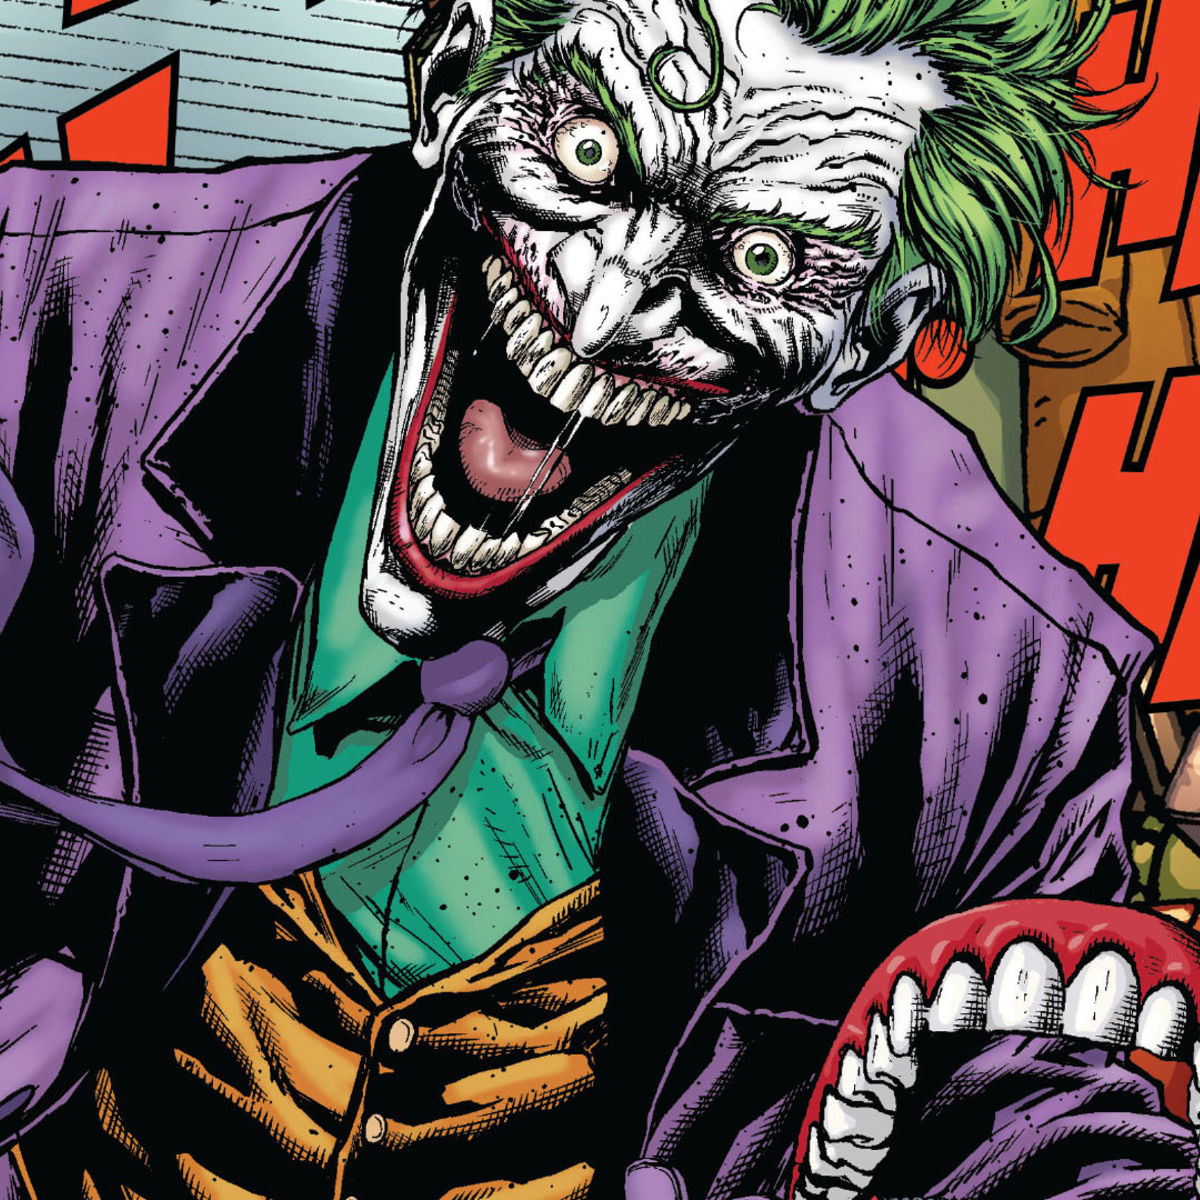 Report jokers mother to feature in dc origin film frances report jokers mother to feature in dc origin film frances mcdormand turns down role ccuart Image collections